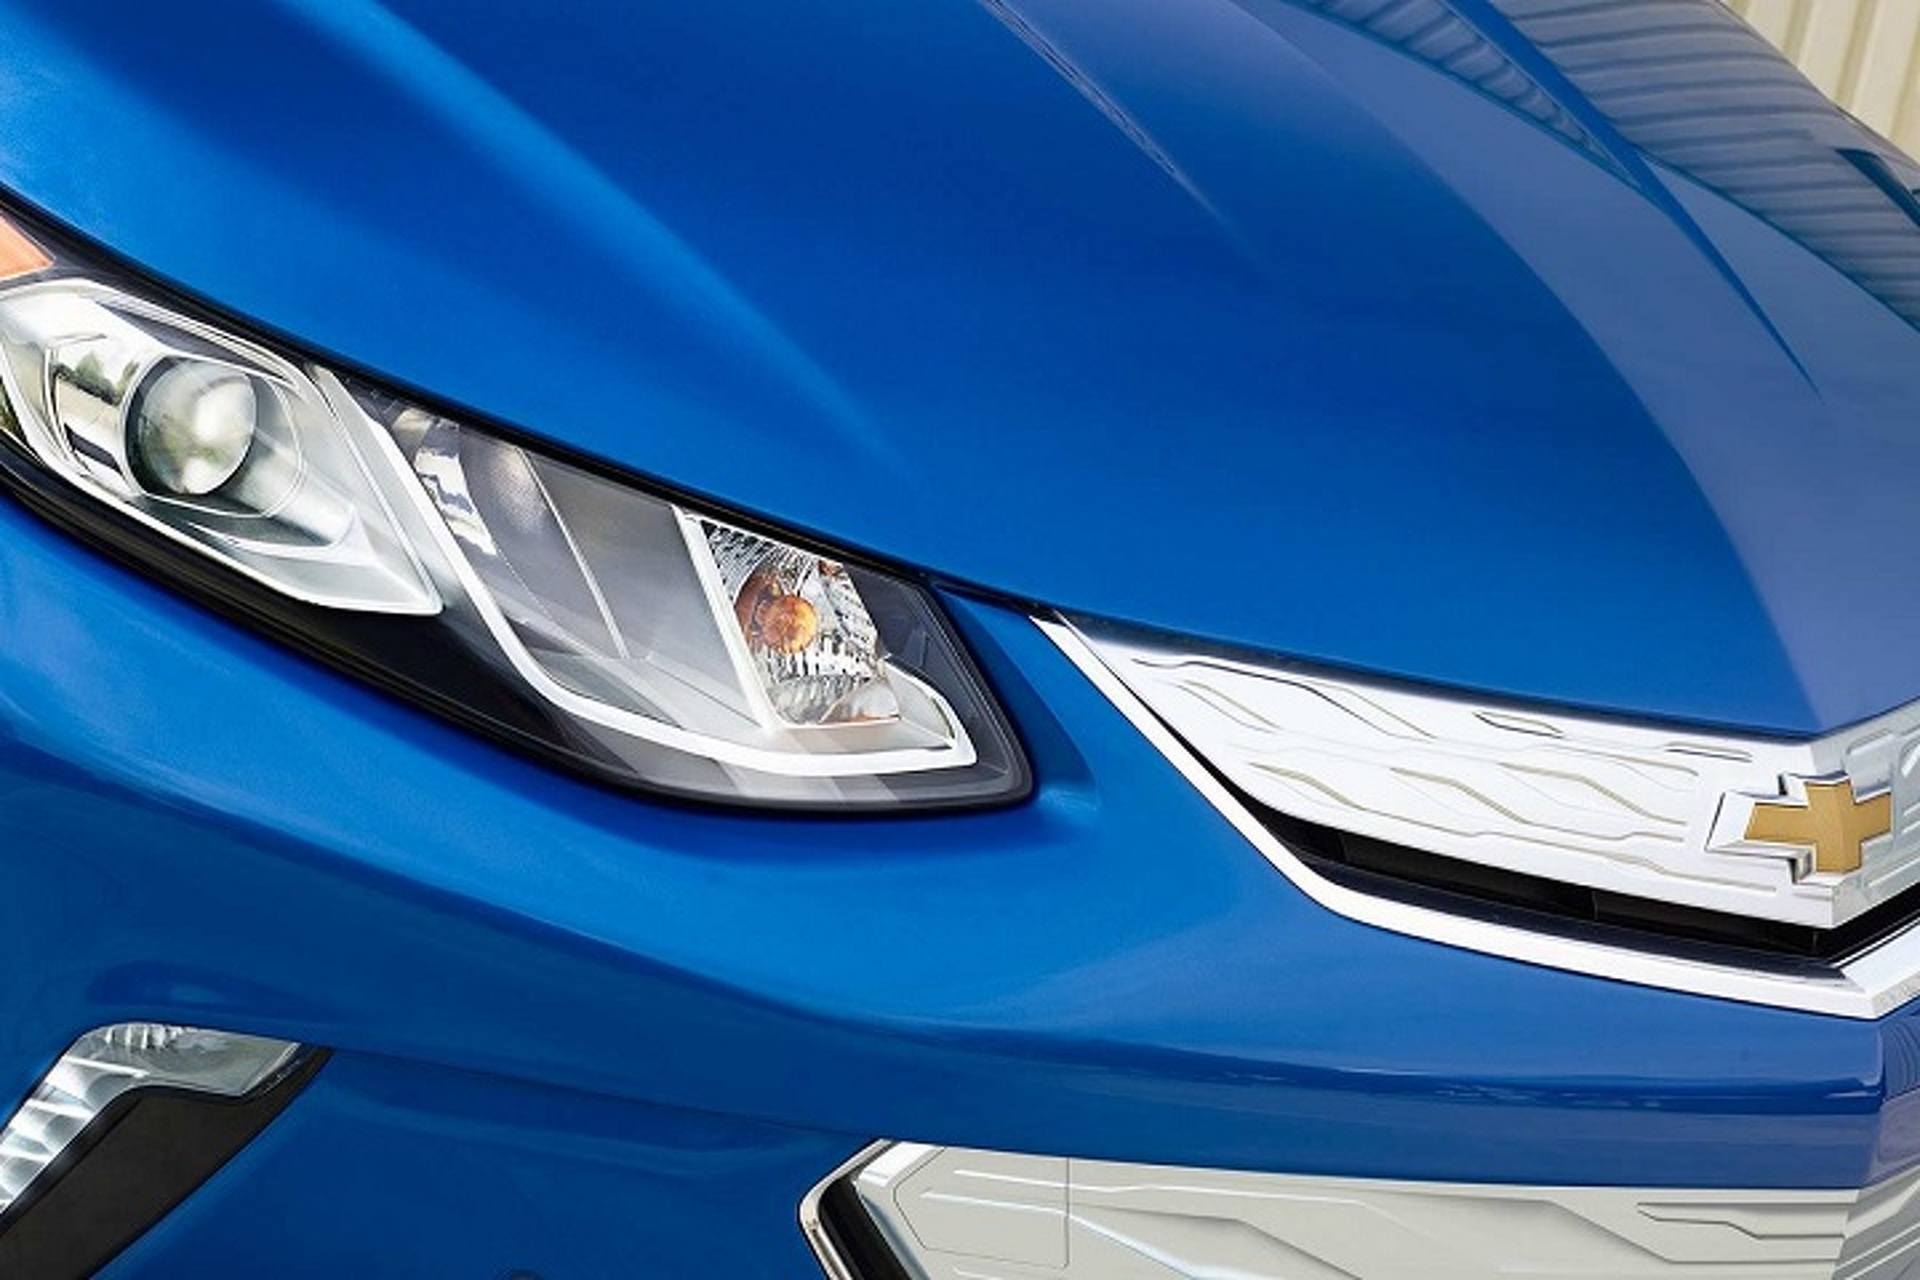 2016 Chevrolet Volt is Your Green Car of the Year